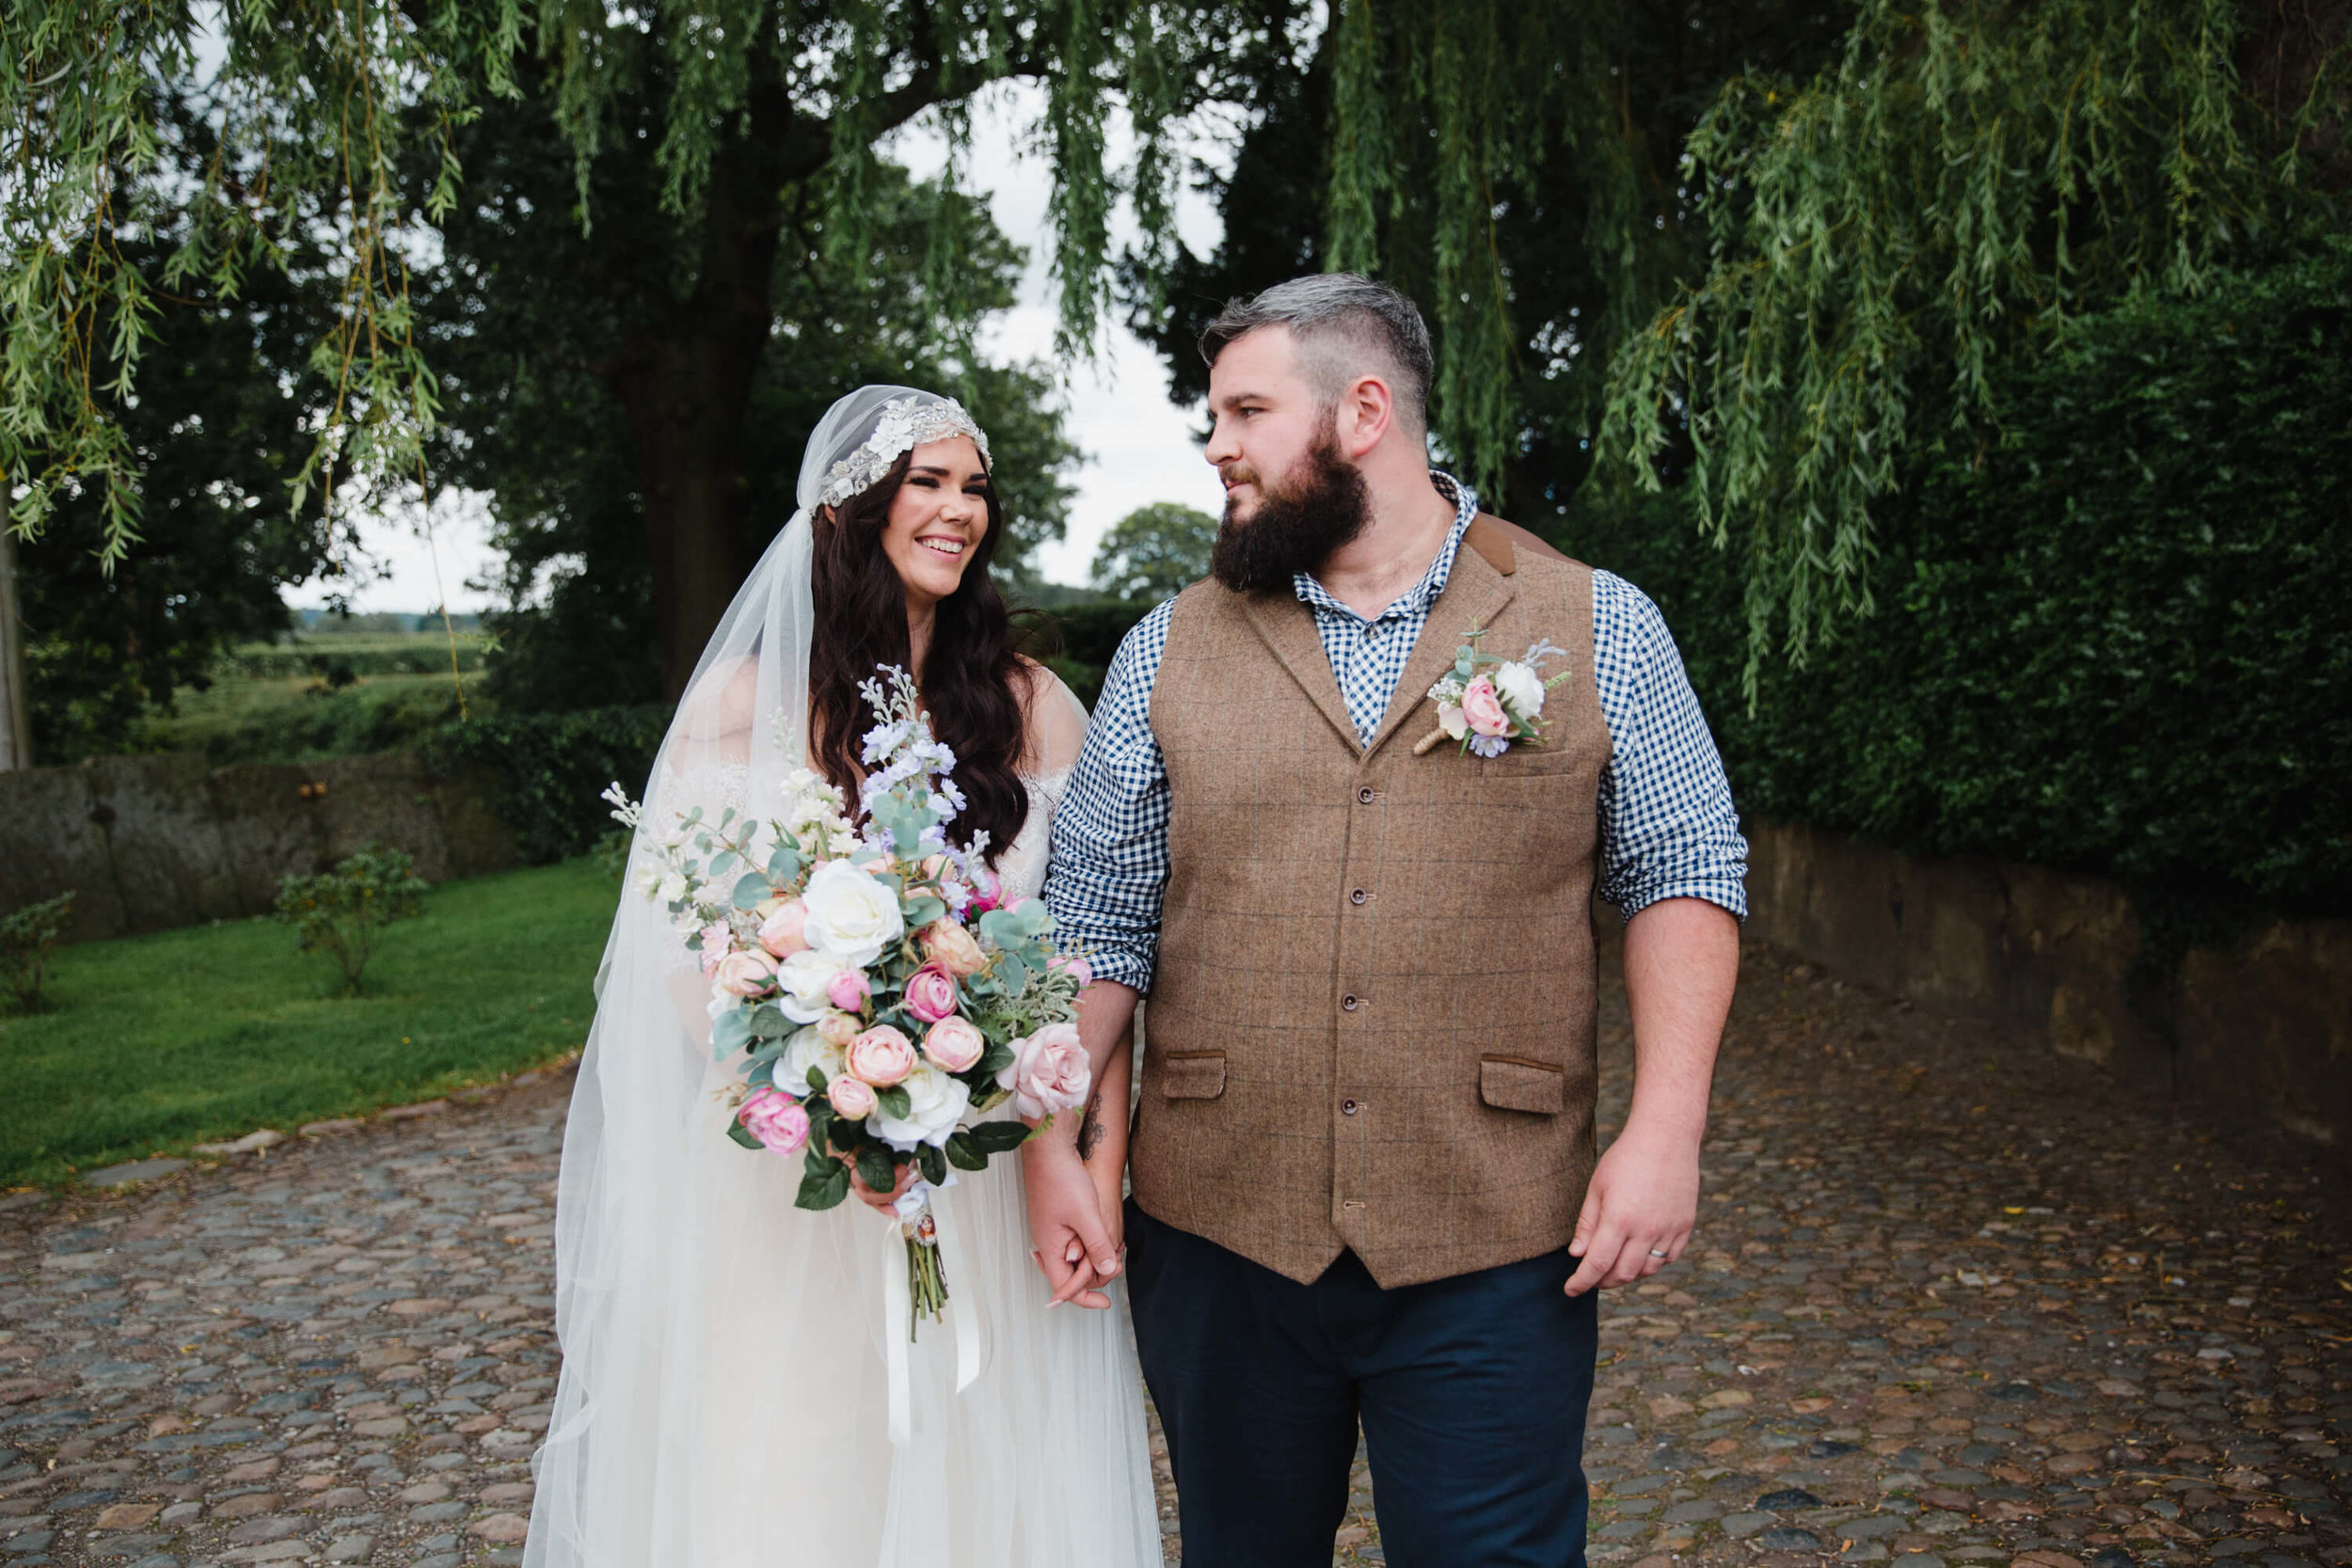 newlyweds take a stroll in cobbled orchard pathway